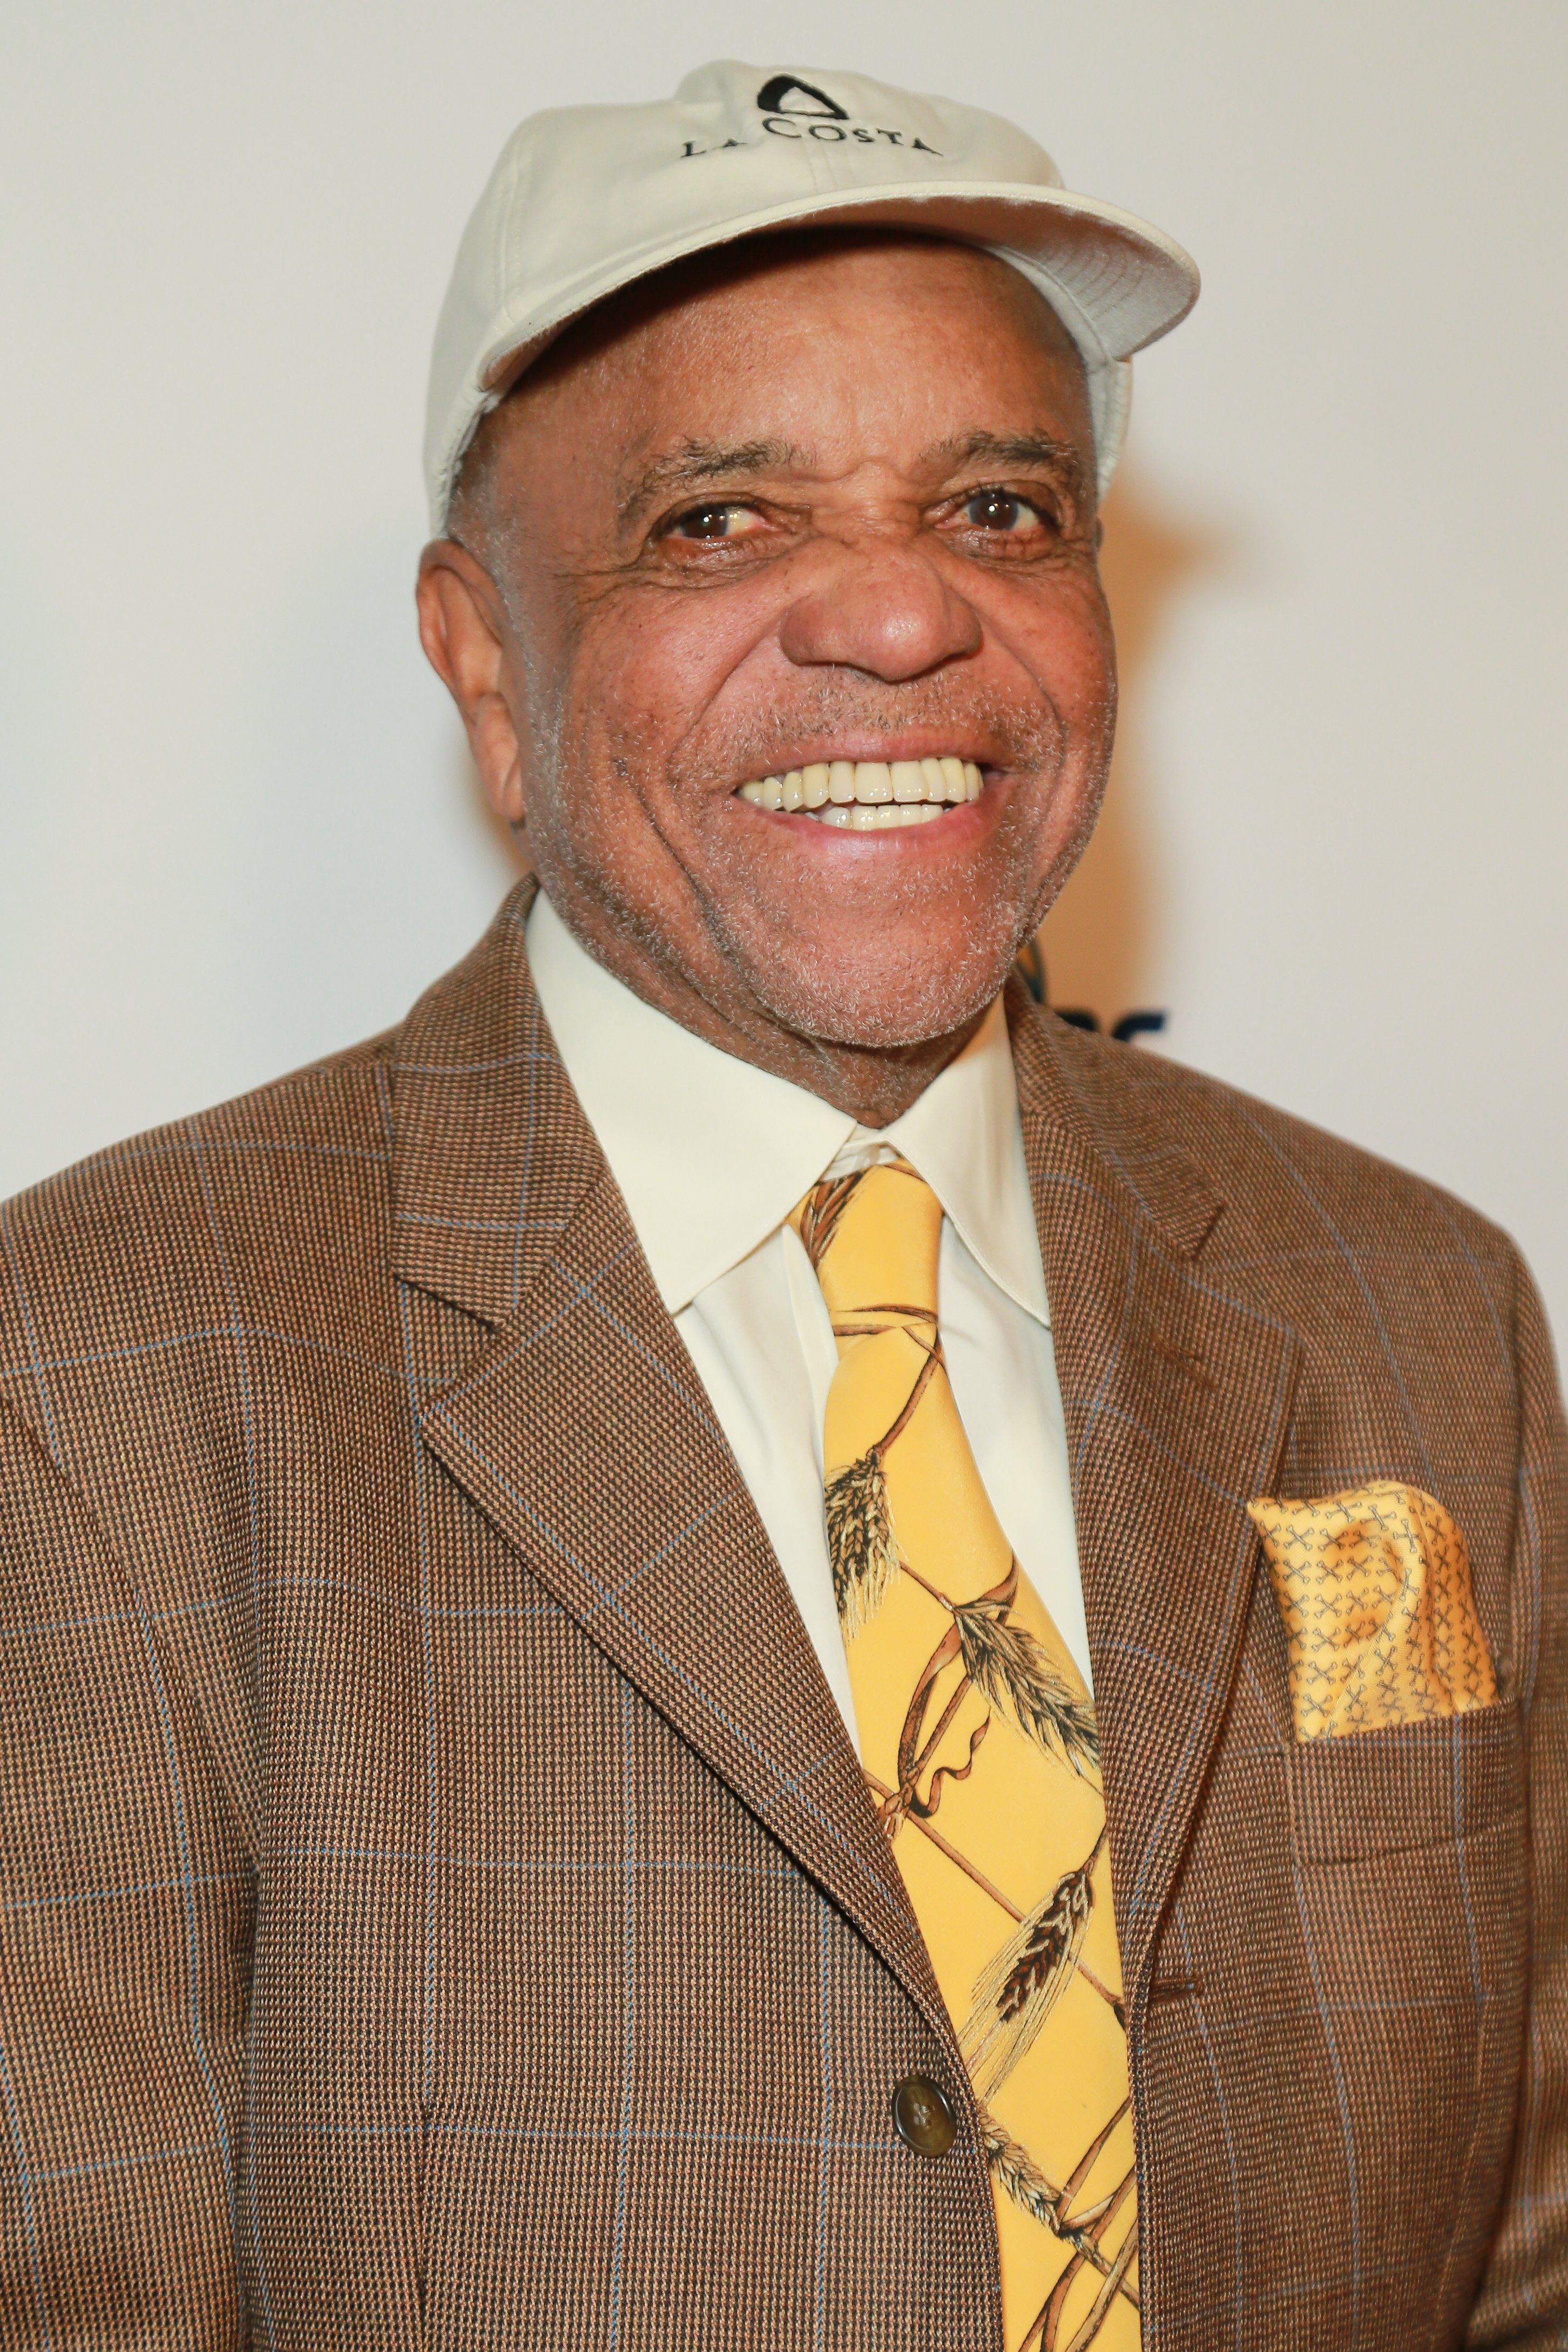 Motown founder Berry Gordy at a fundraising celebration in Beverly Hills in November 2018.   Photo: Getty Images